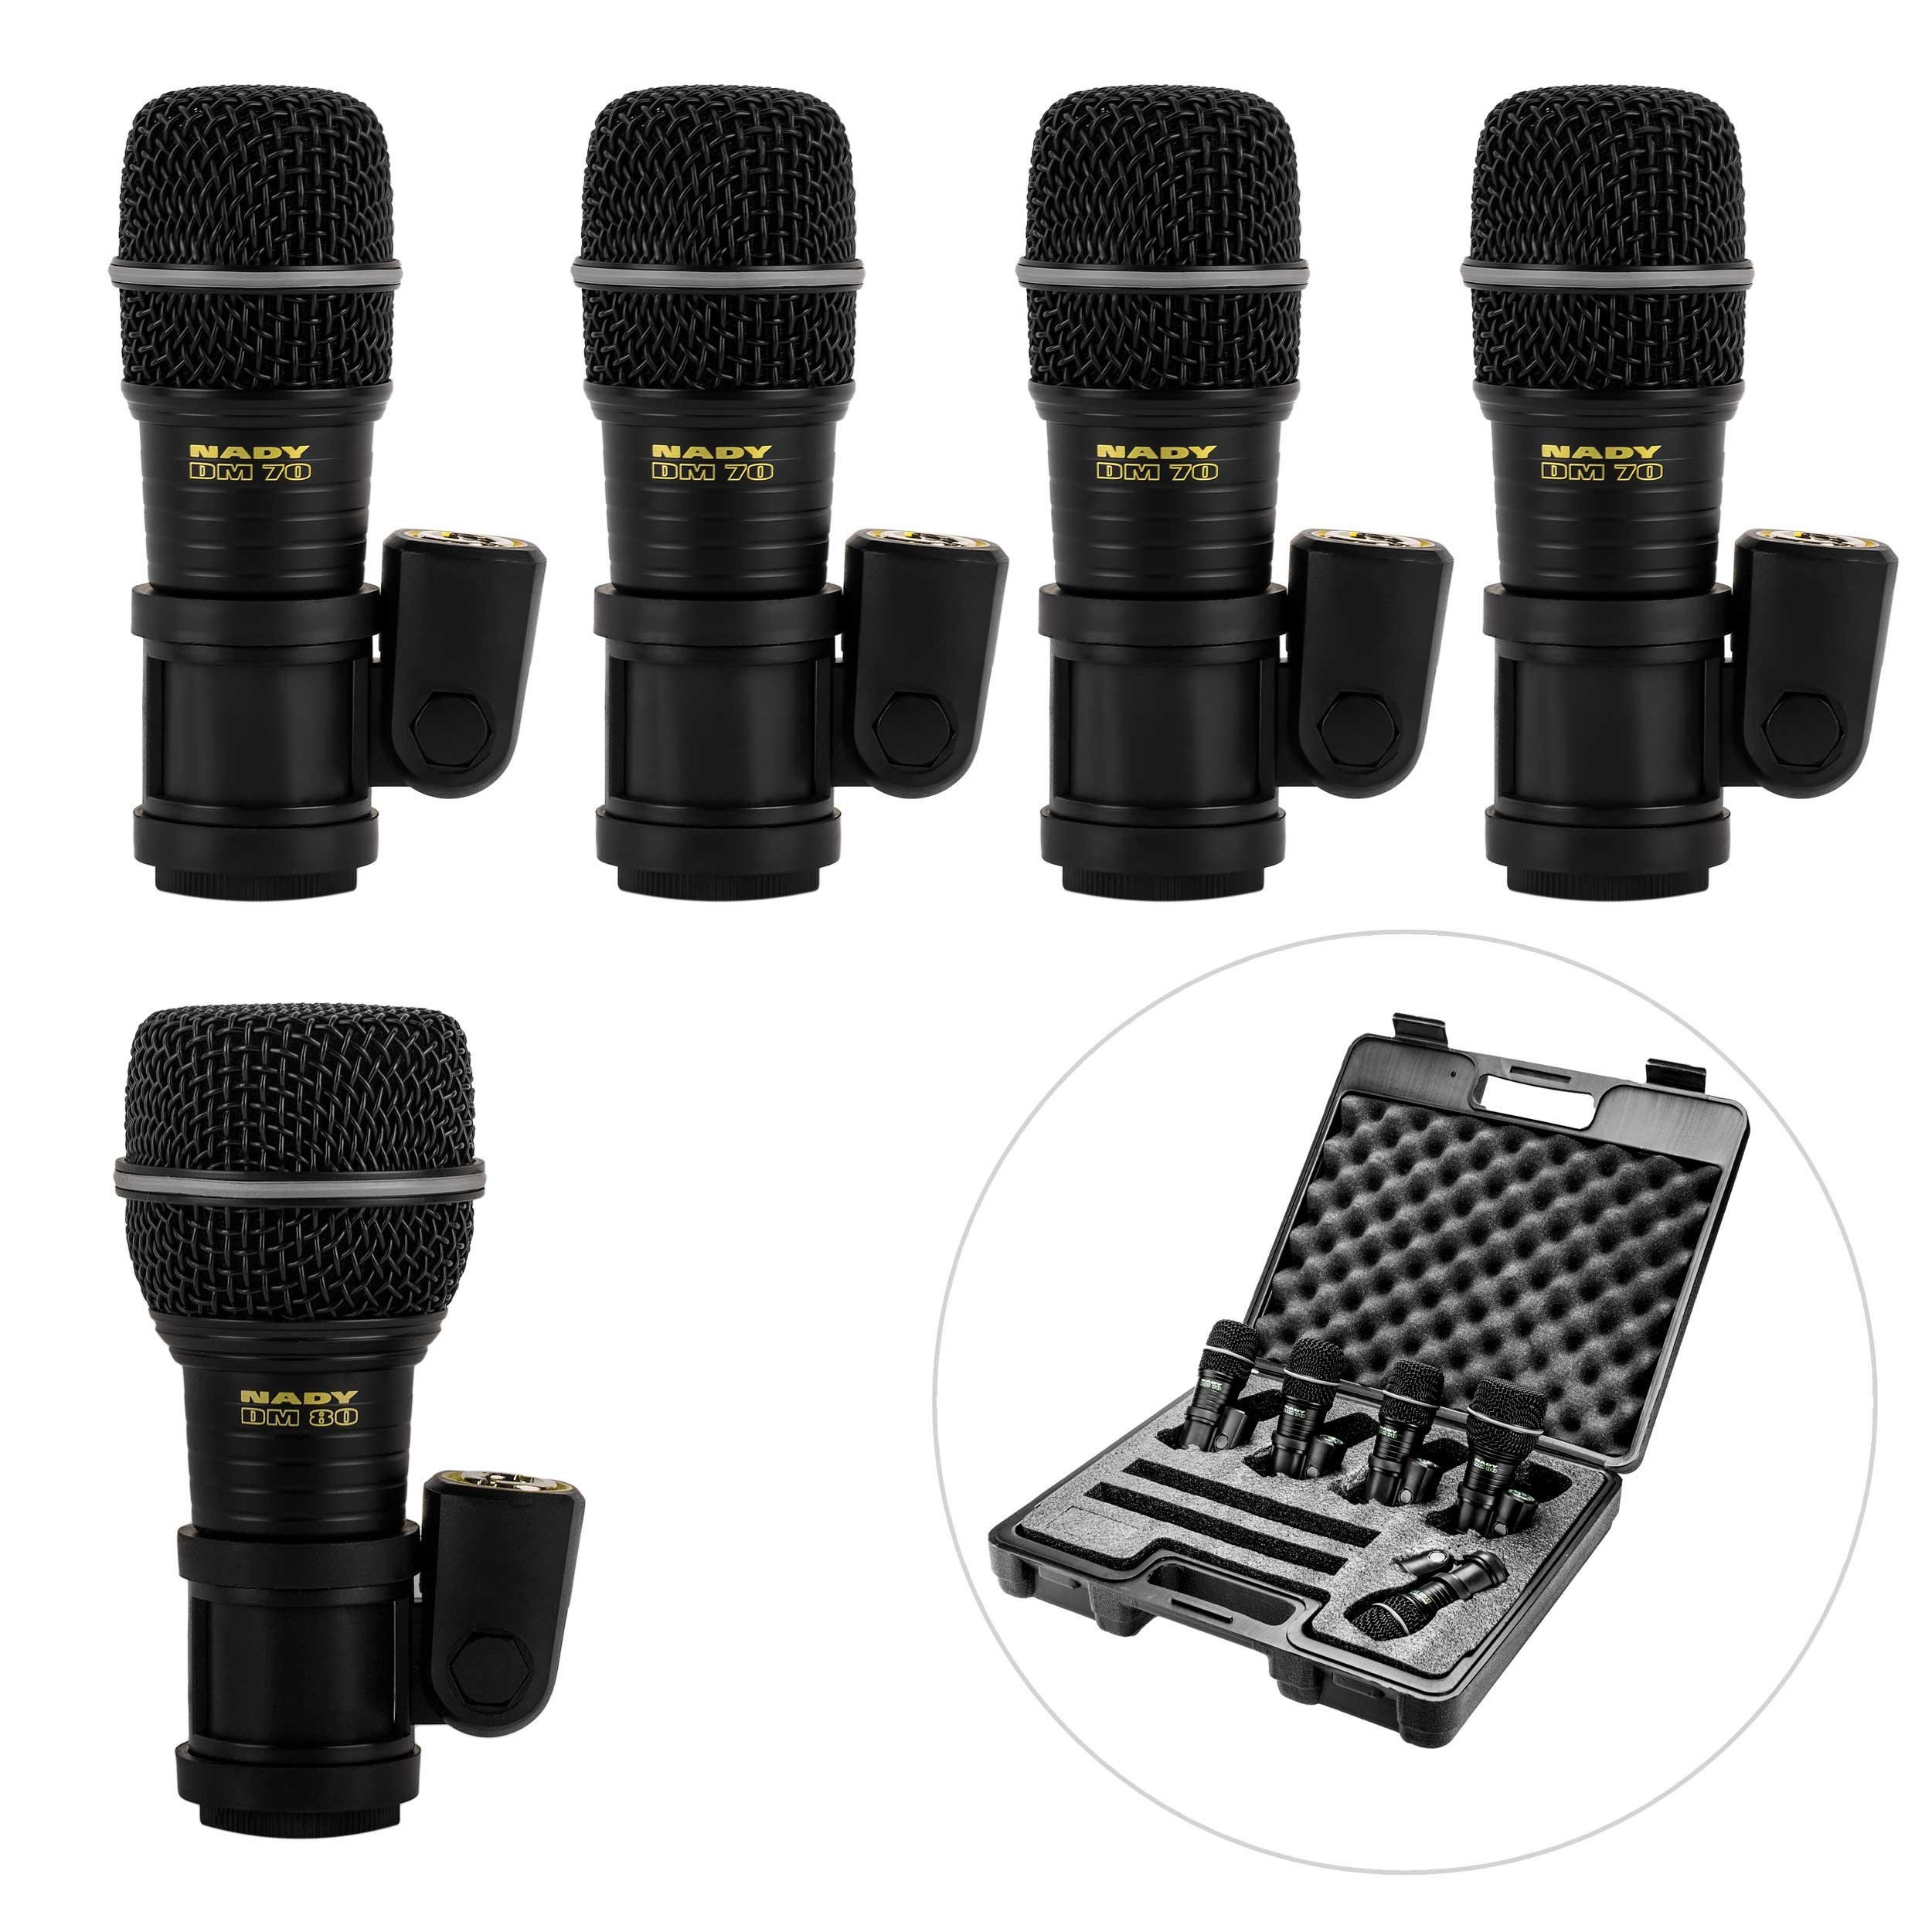 Nady DMK-5 Five Piece Drum Microphone Kit - Includes four DM-70 tom/snare microphones, one DM-80 kick drum microphone, and a foam-lined storage case by Nady